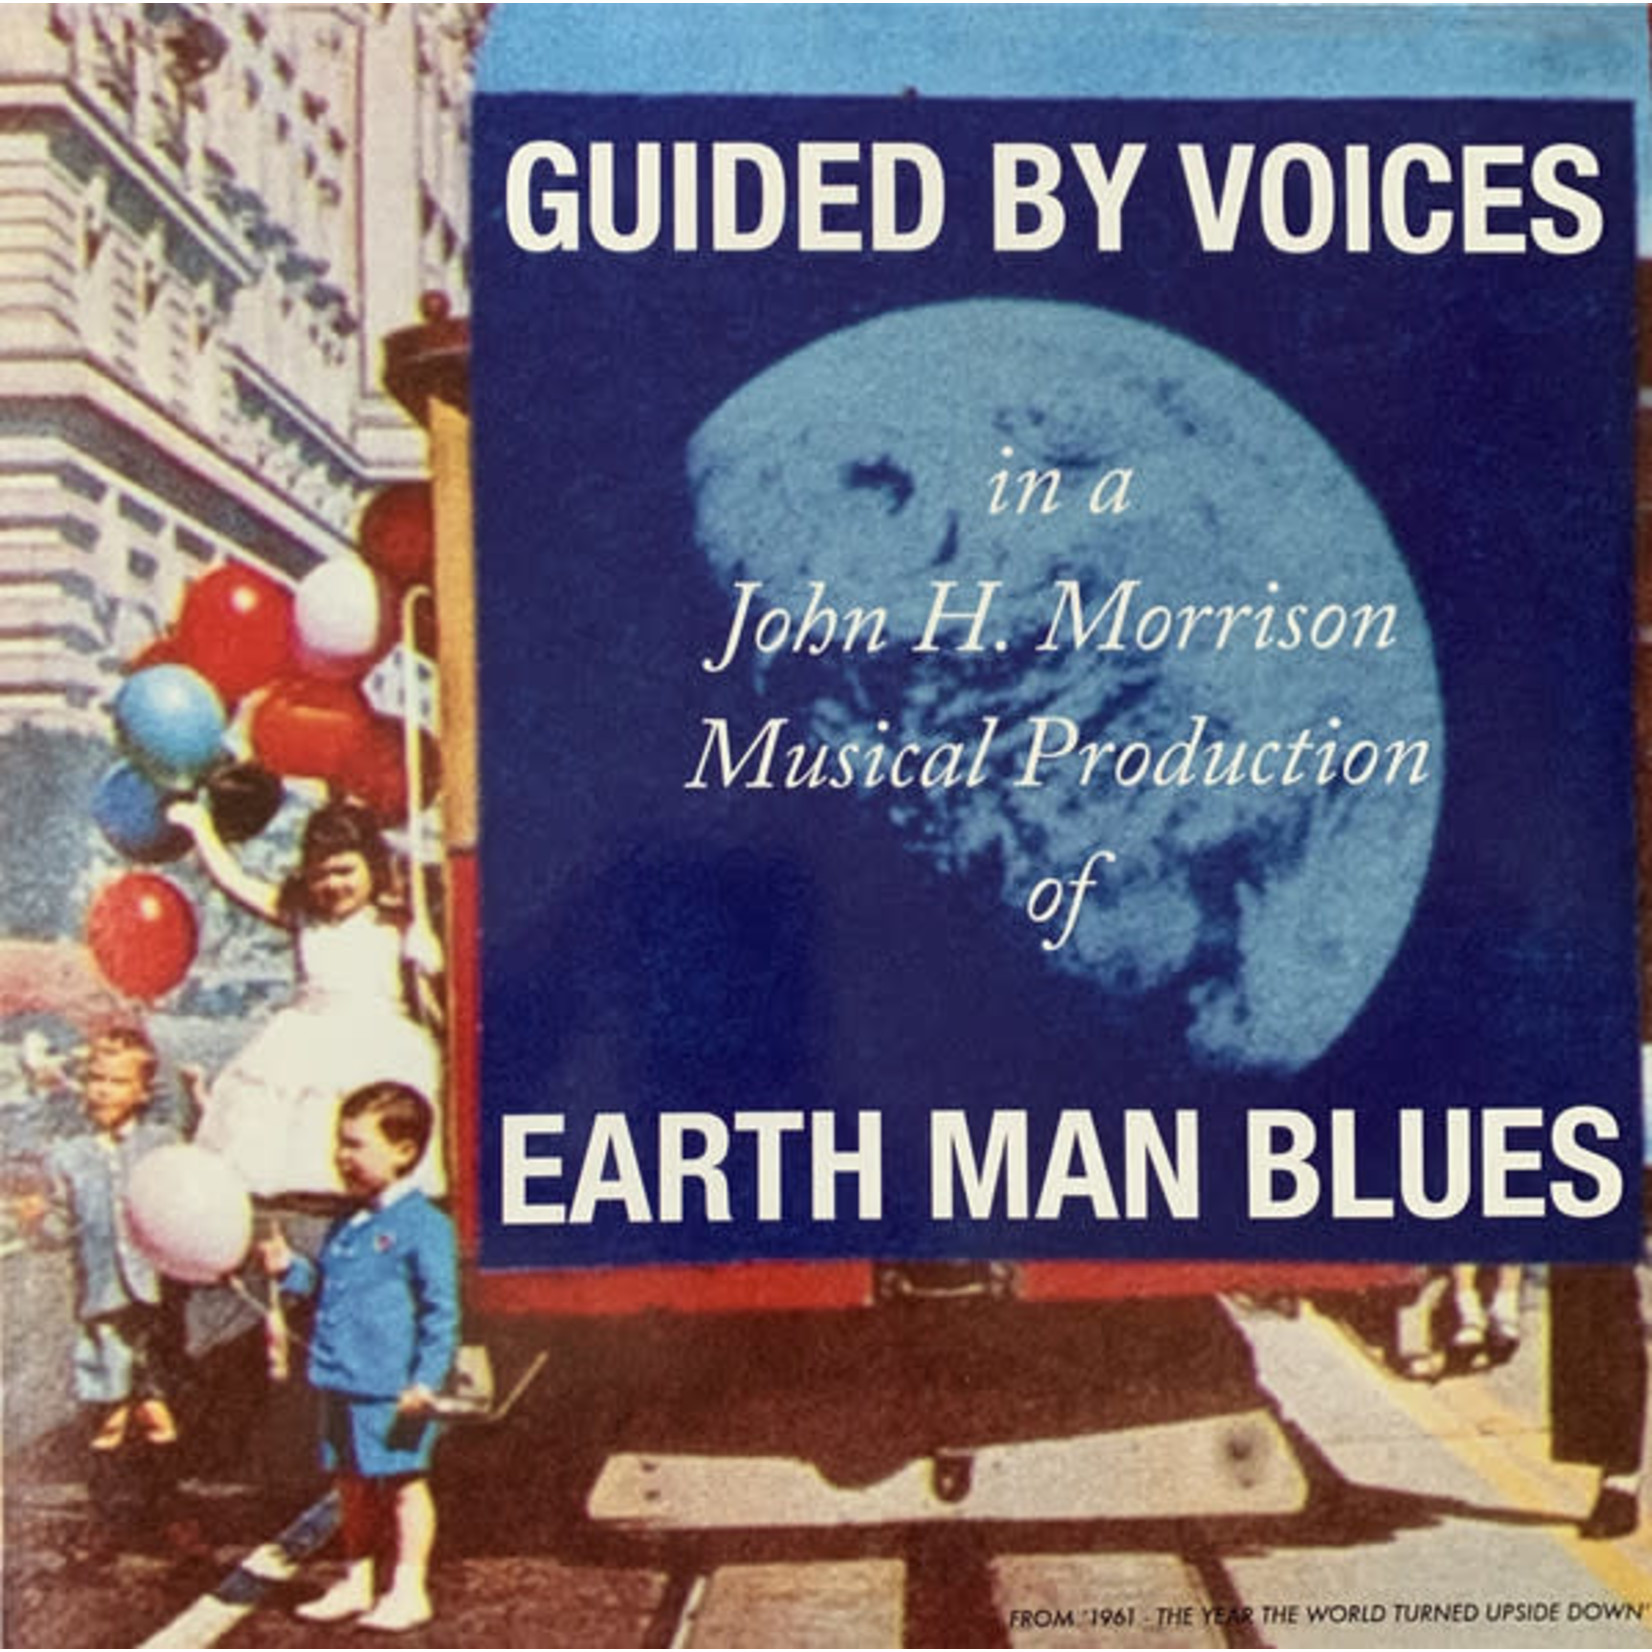 GUIDED BY VOICES EARTH MAN BLUES